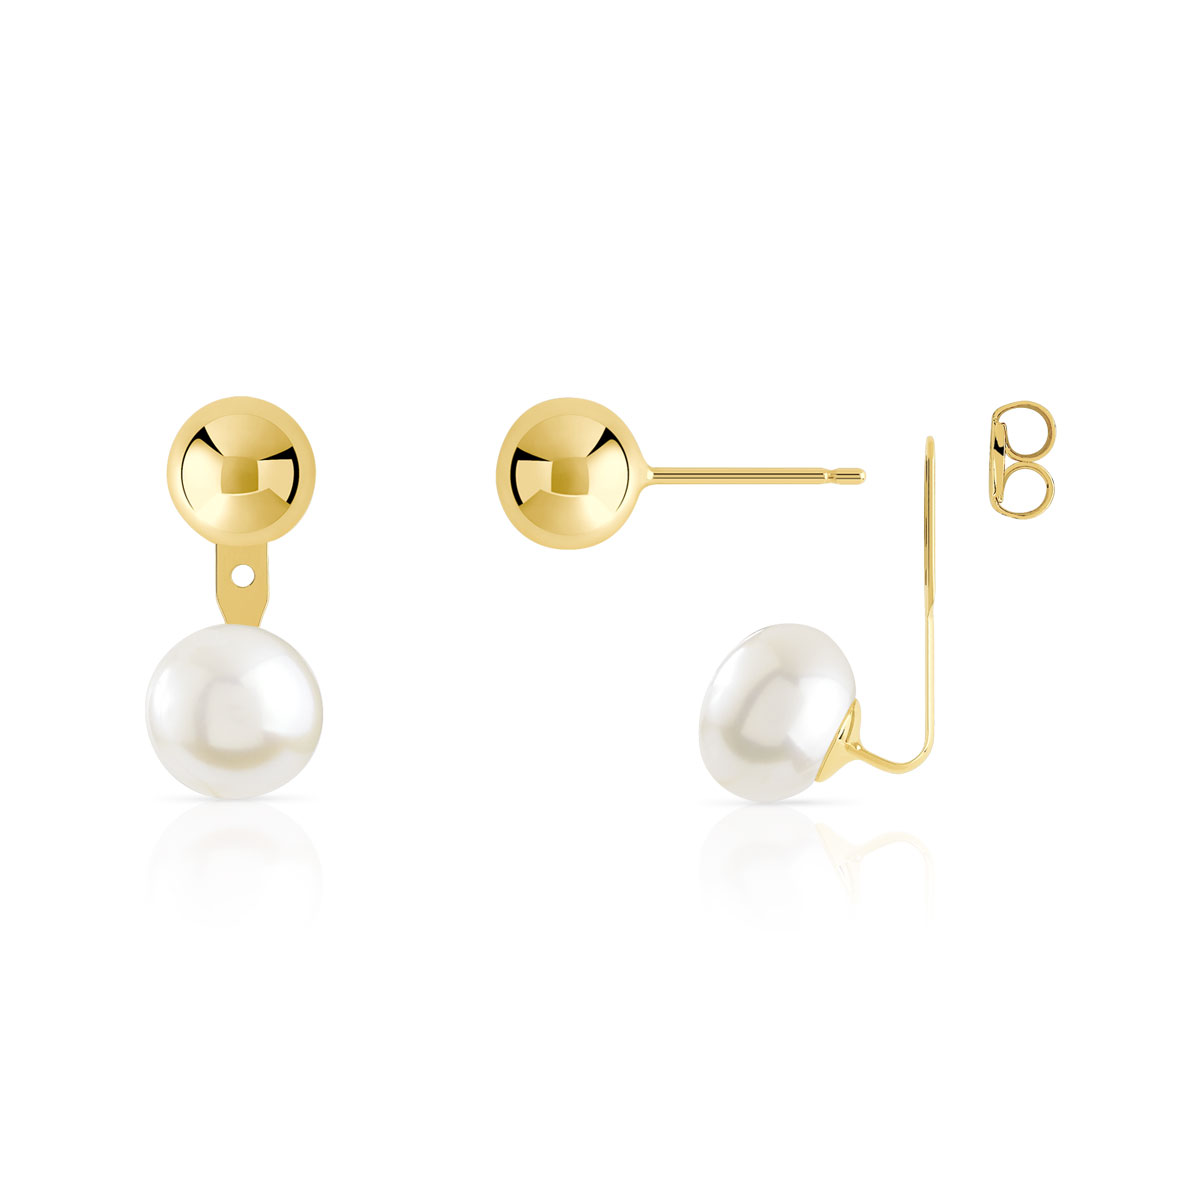 Boucles d' oreilles or 375 jaune perle de culture de chine - vue 1